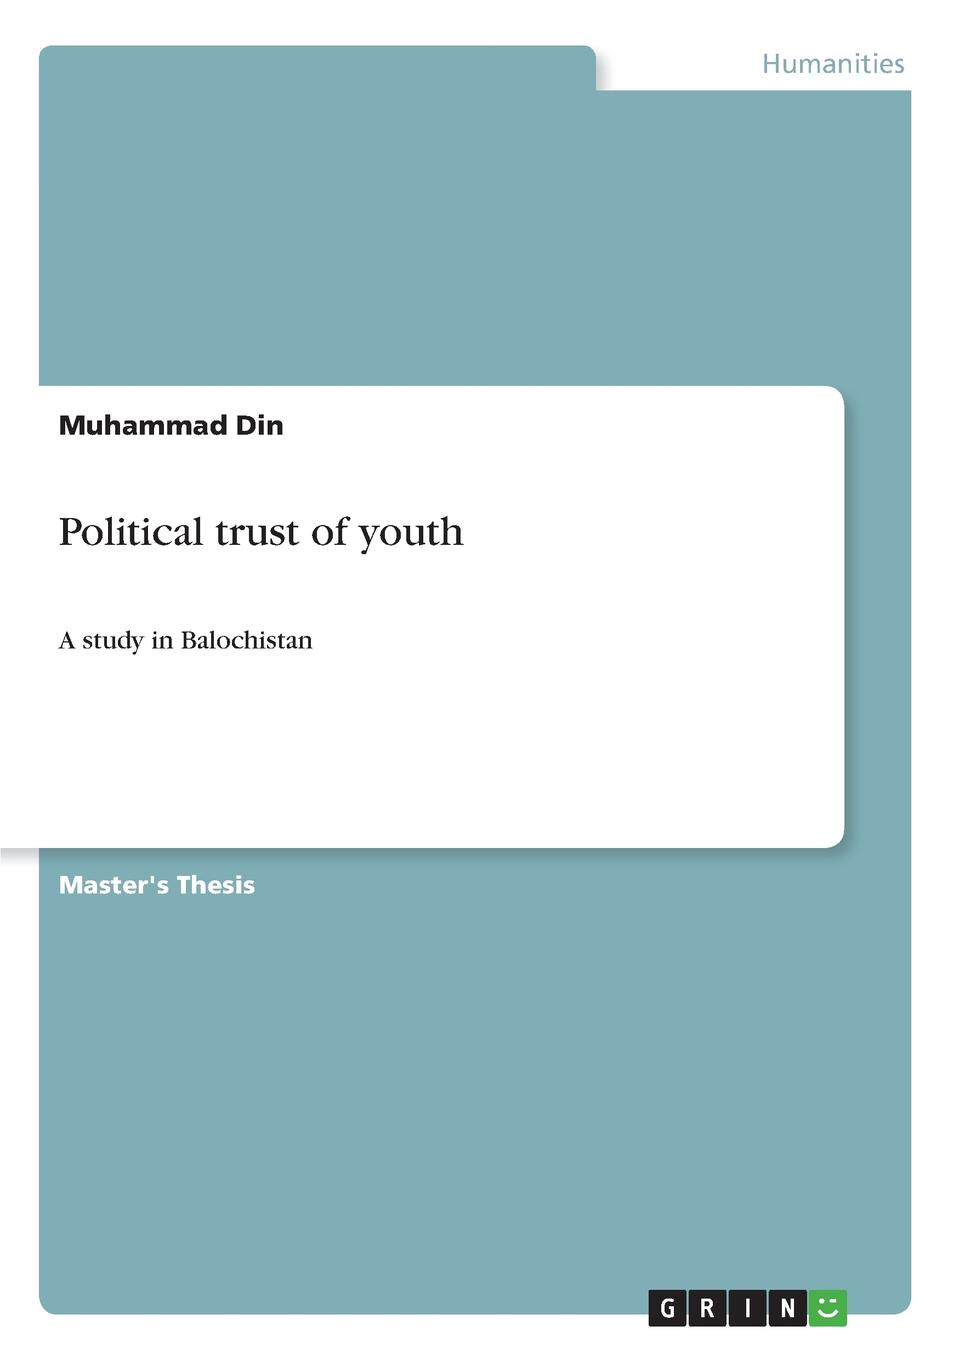 Muhammad Din Political trust of youth sherwyn morreale building the high trust organization strategies for supporting five key dimensions of trust